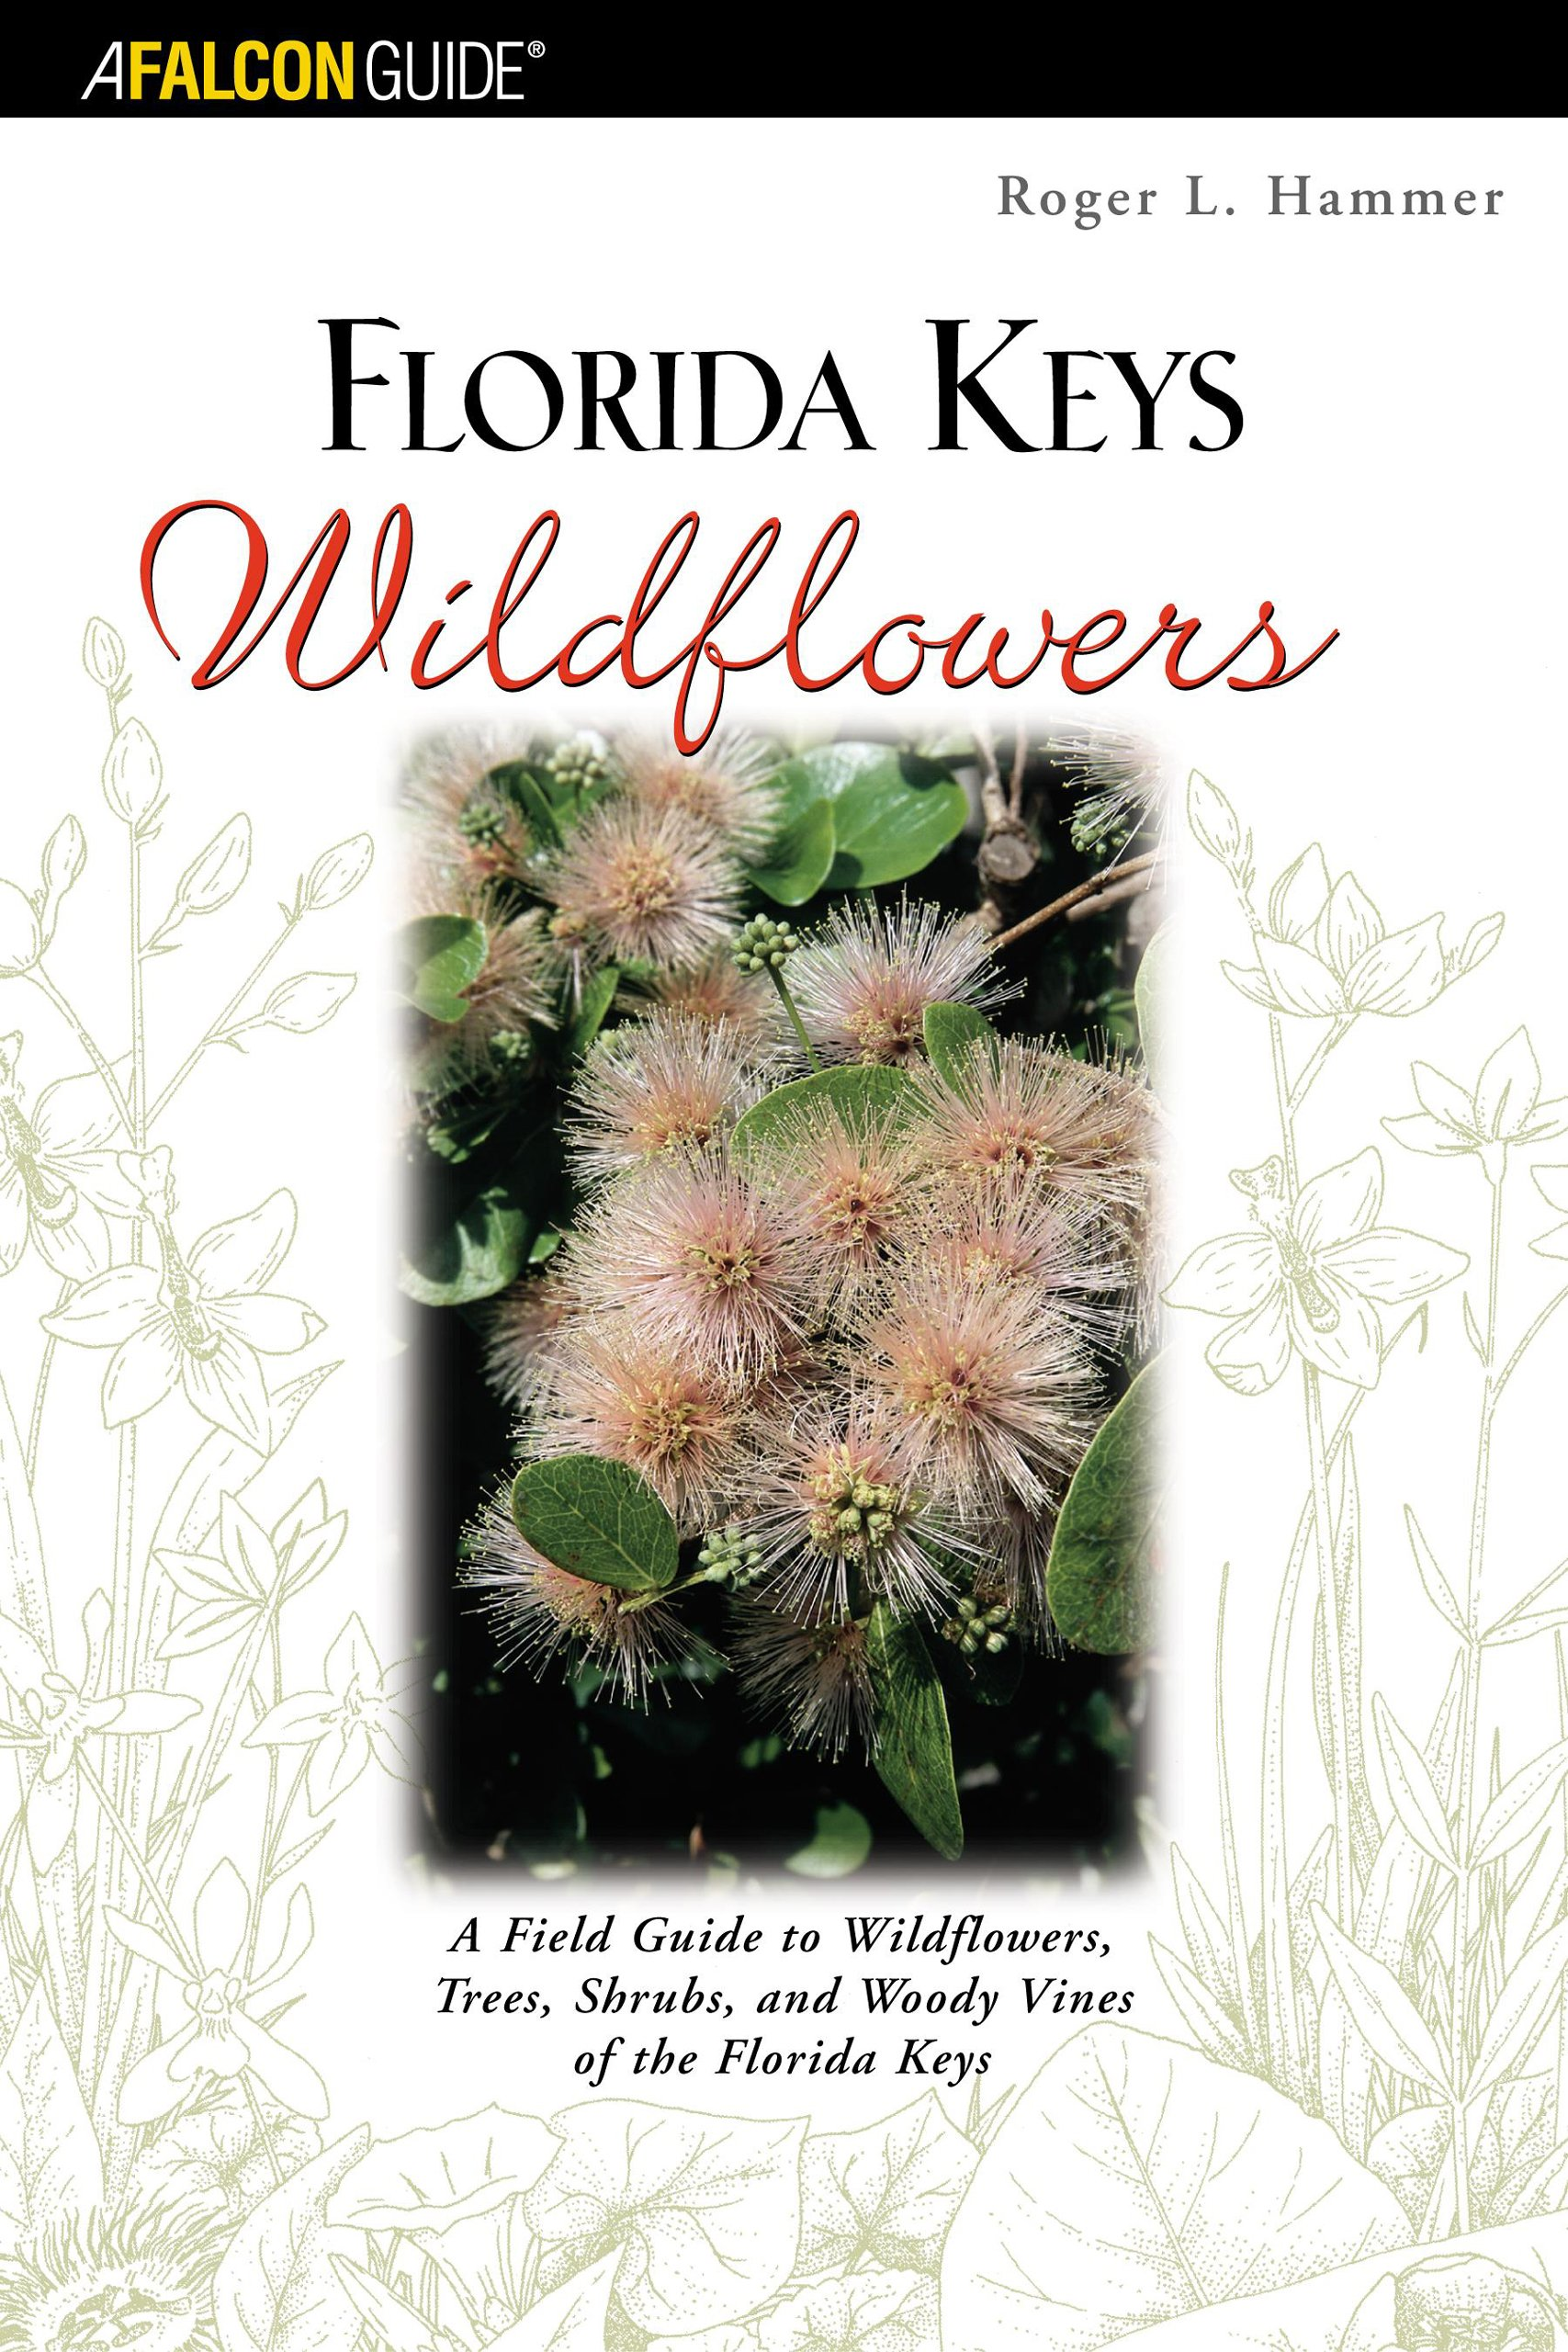 Florida Keys Wildflowers: A Field Guide to the Wildflowers, Trees, Shrubs and Woody Vines of the Florida Keys ebook